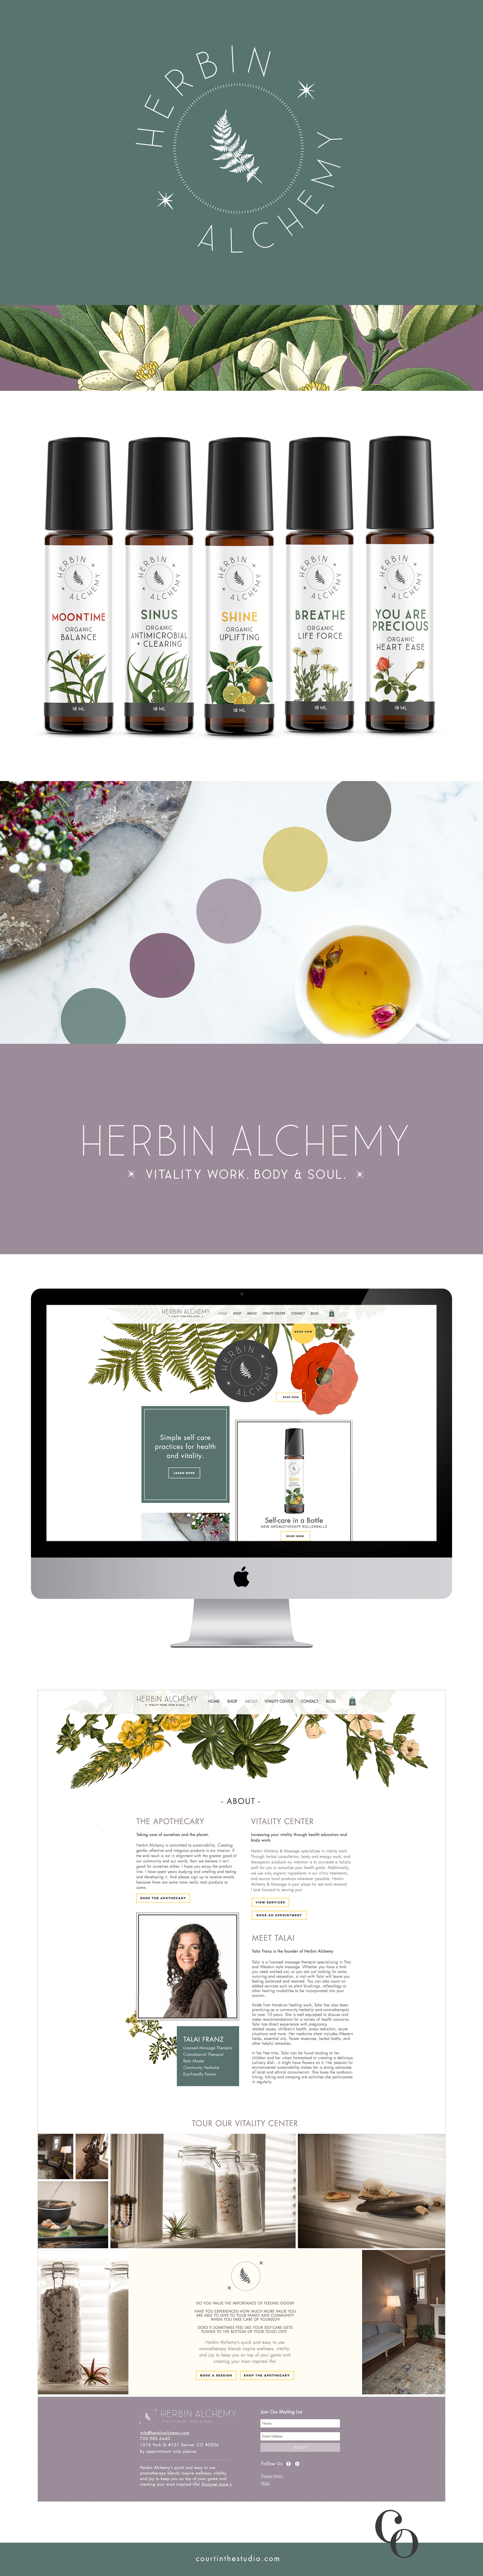 Herbin Alchemy Branding, Packaging, and Web Design by Courtney Oliver   courtinthestudio.com